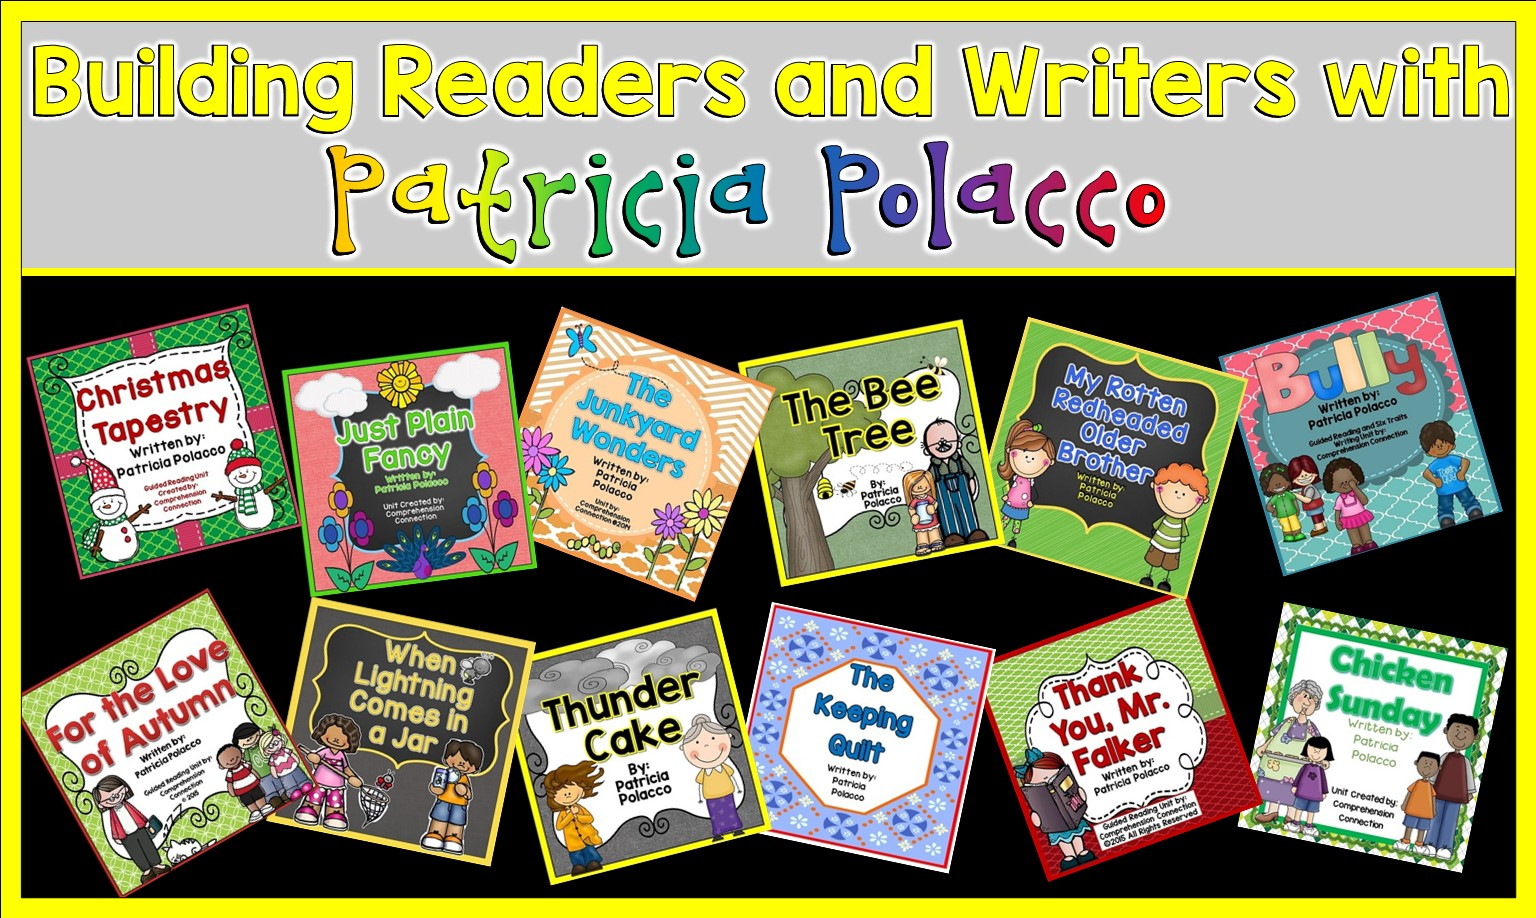 Are you a Patricia Polacco fan? Well, check out this post to get ideas for thirteen of her best titles.